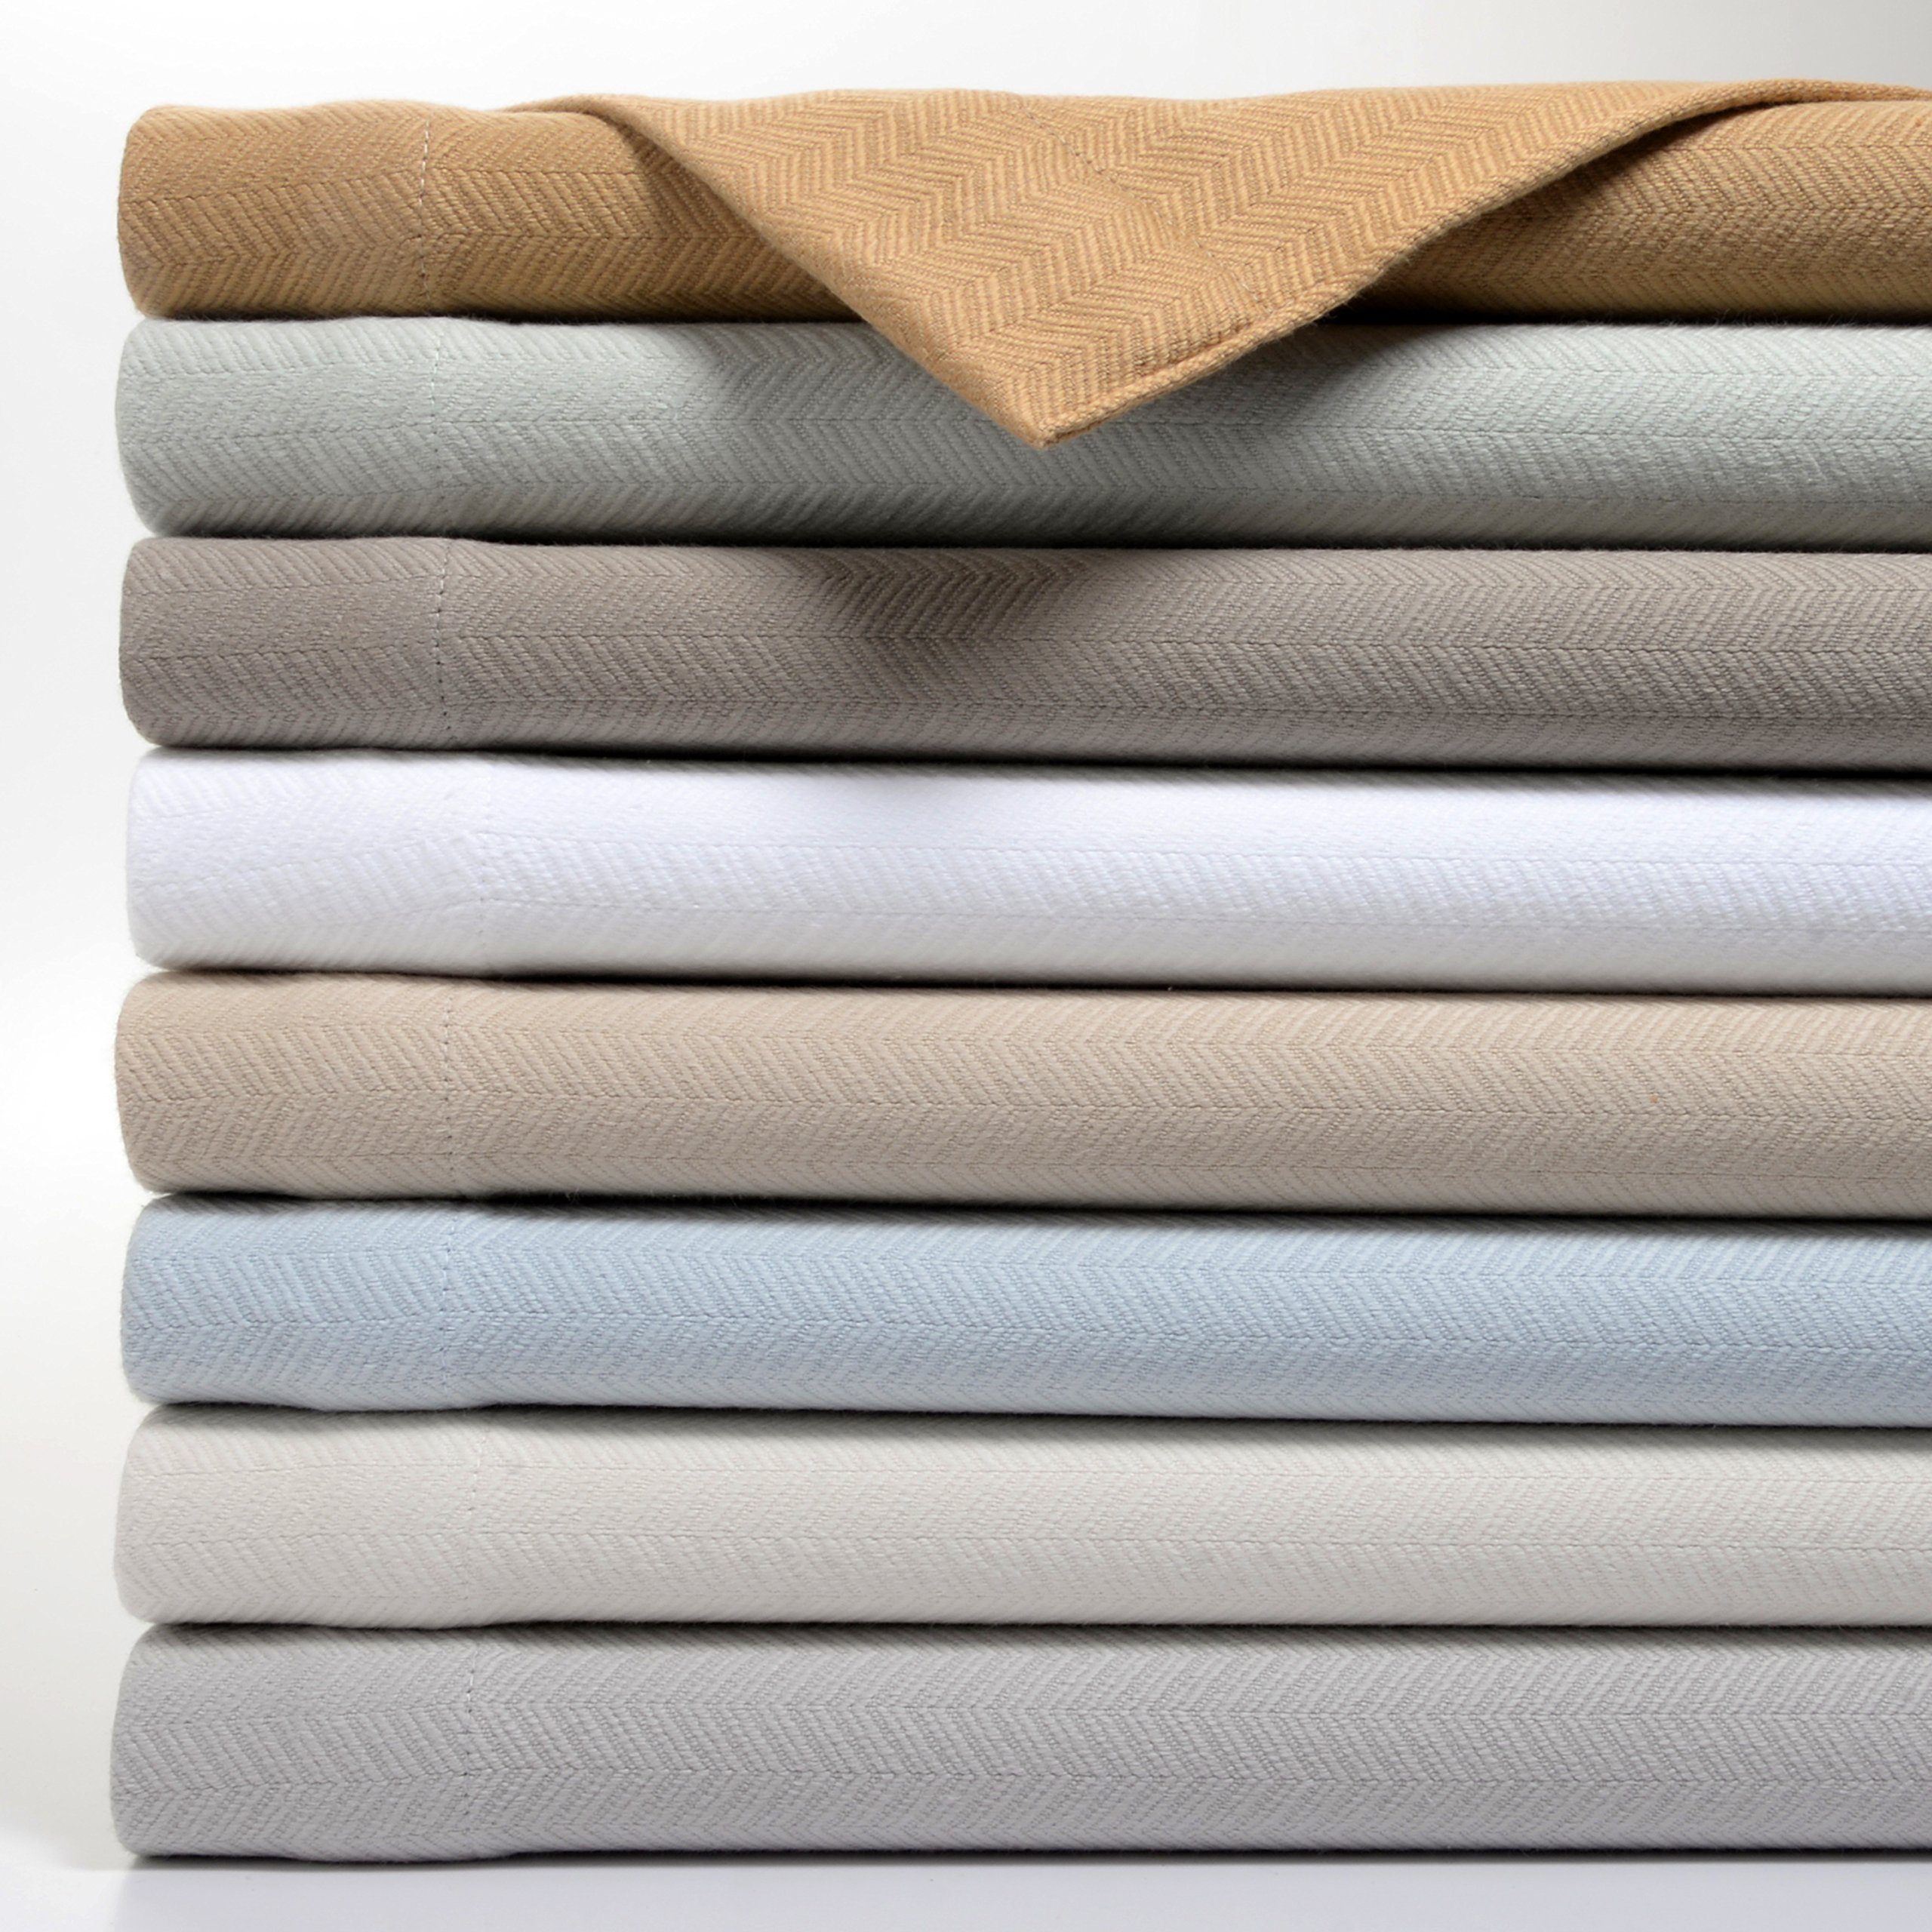 Bibb Home Premium 100% Cotton Thermal Blanket, Soft and Breathable Cotton for All-Season, Bed Blanket and Oversized Throw Blanket with Herringbone Weave Pattern (50\